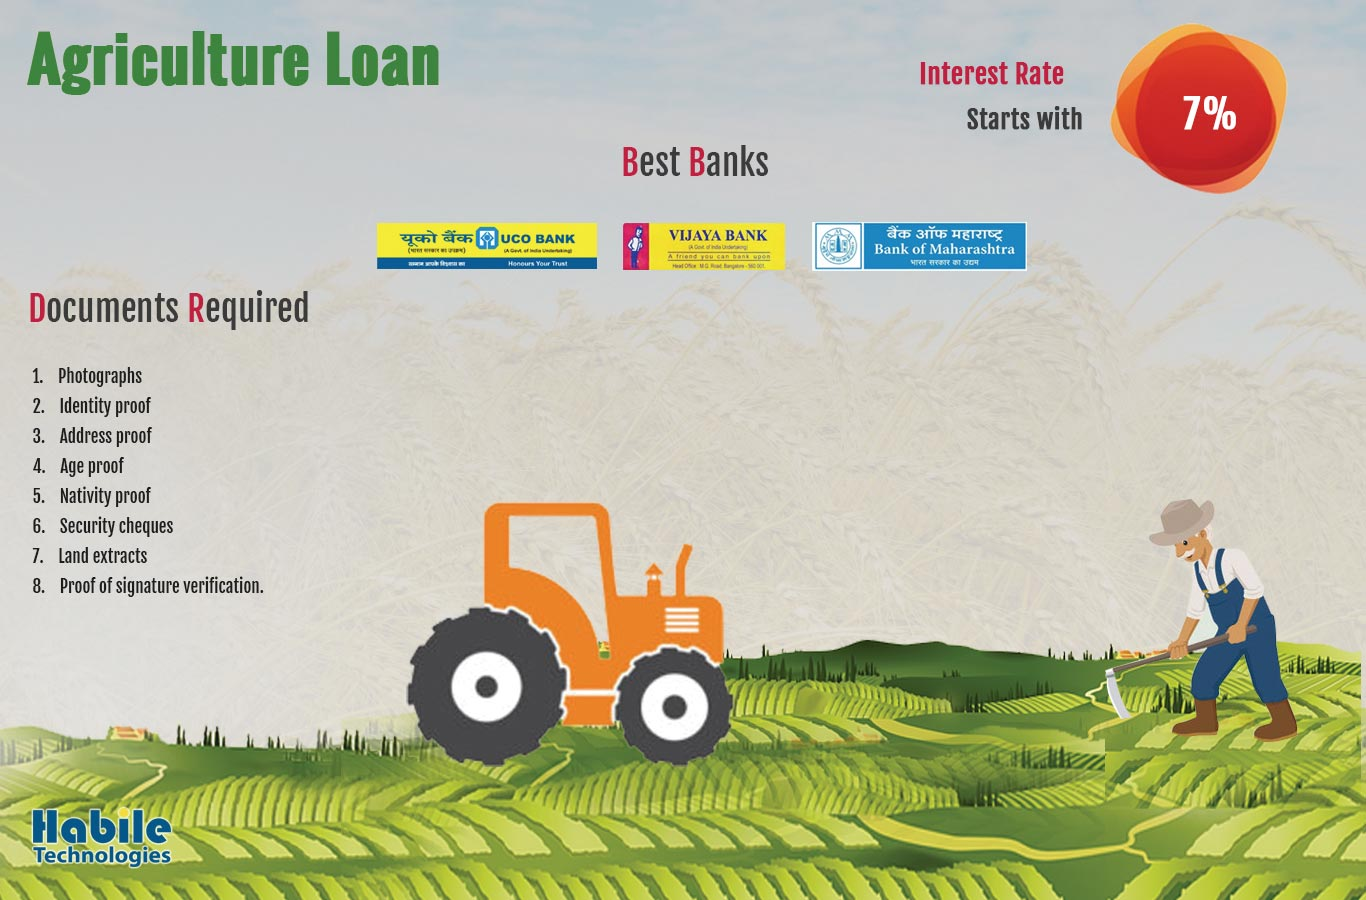 Documents required for Agriculture Loan